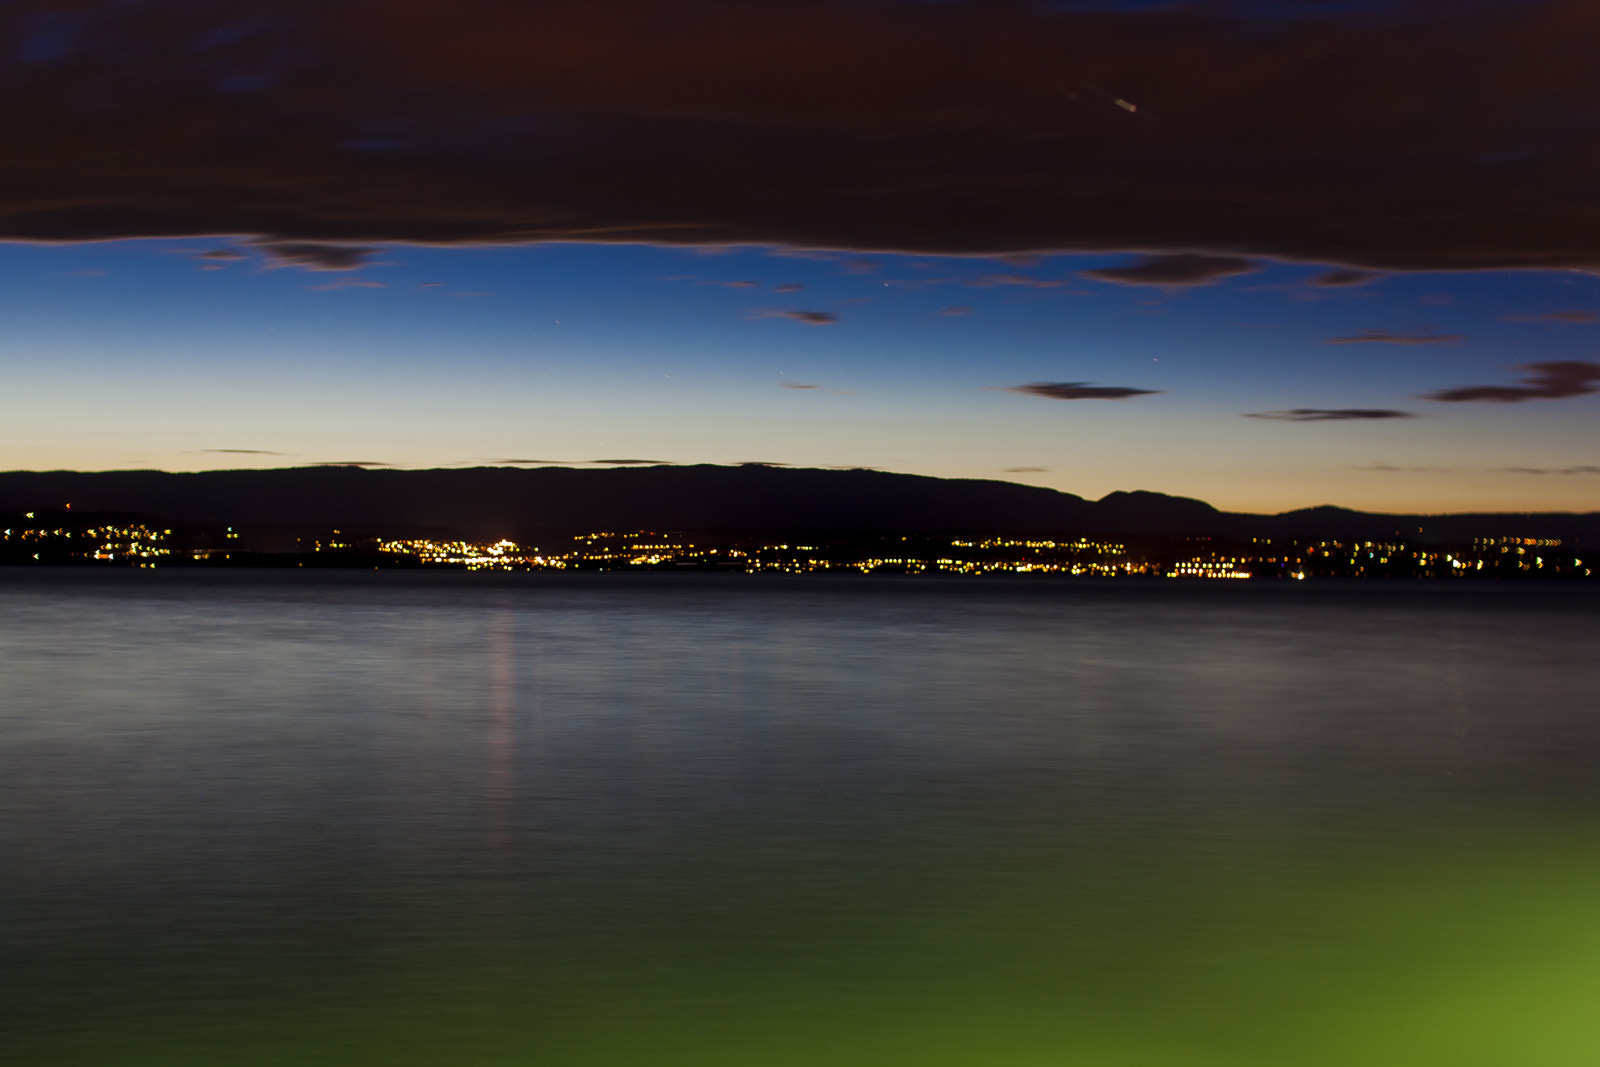 Photograph Genfersee at Nigh by d. vux on 500px